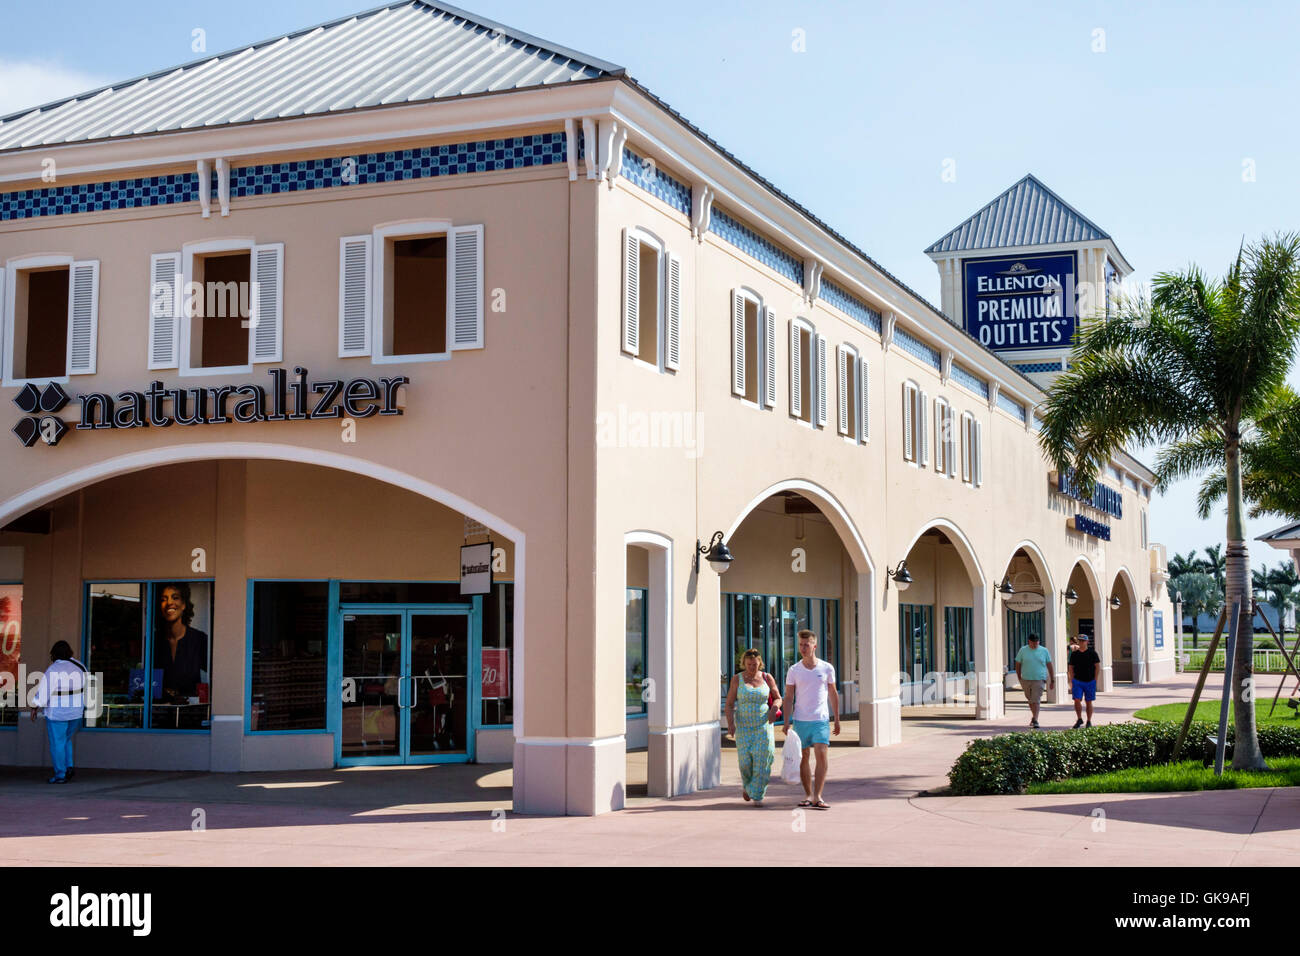 Visit the Levi's® Outlet at Ellenton Premium Outlets in Ellenton, Florida and we can personally help you find the perfect pair of jeans. You wear jeans. You live in Levi's ®.